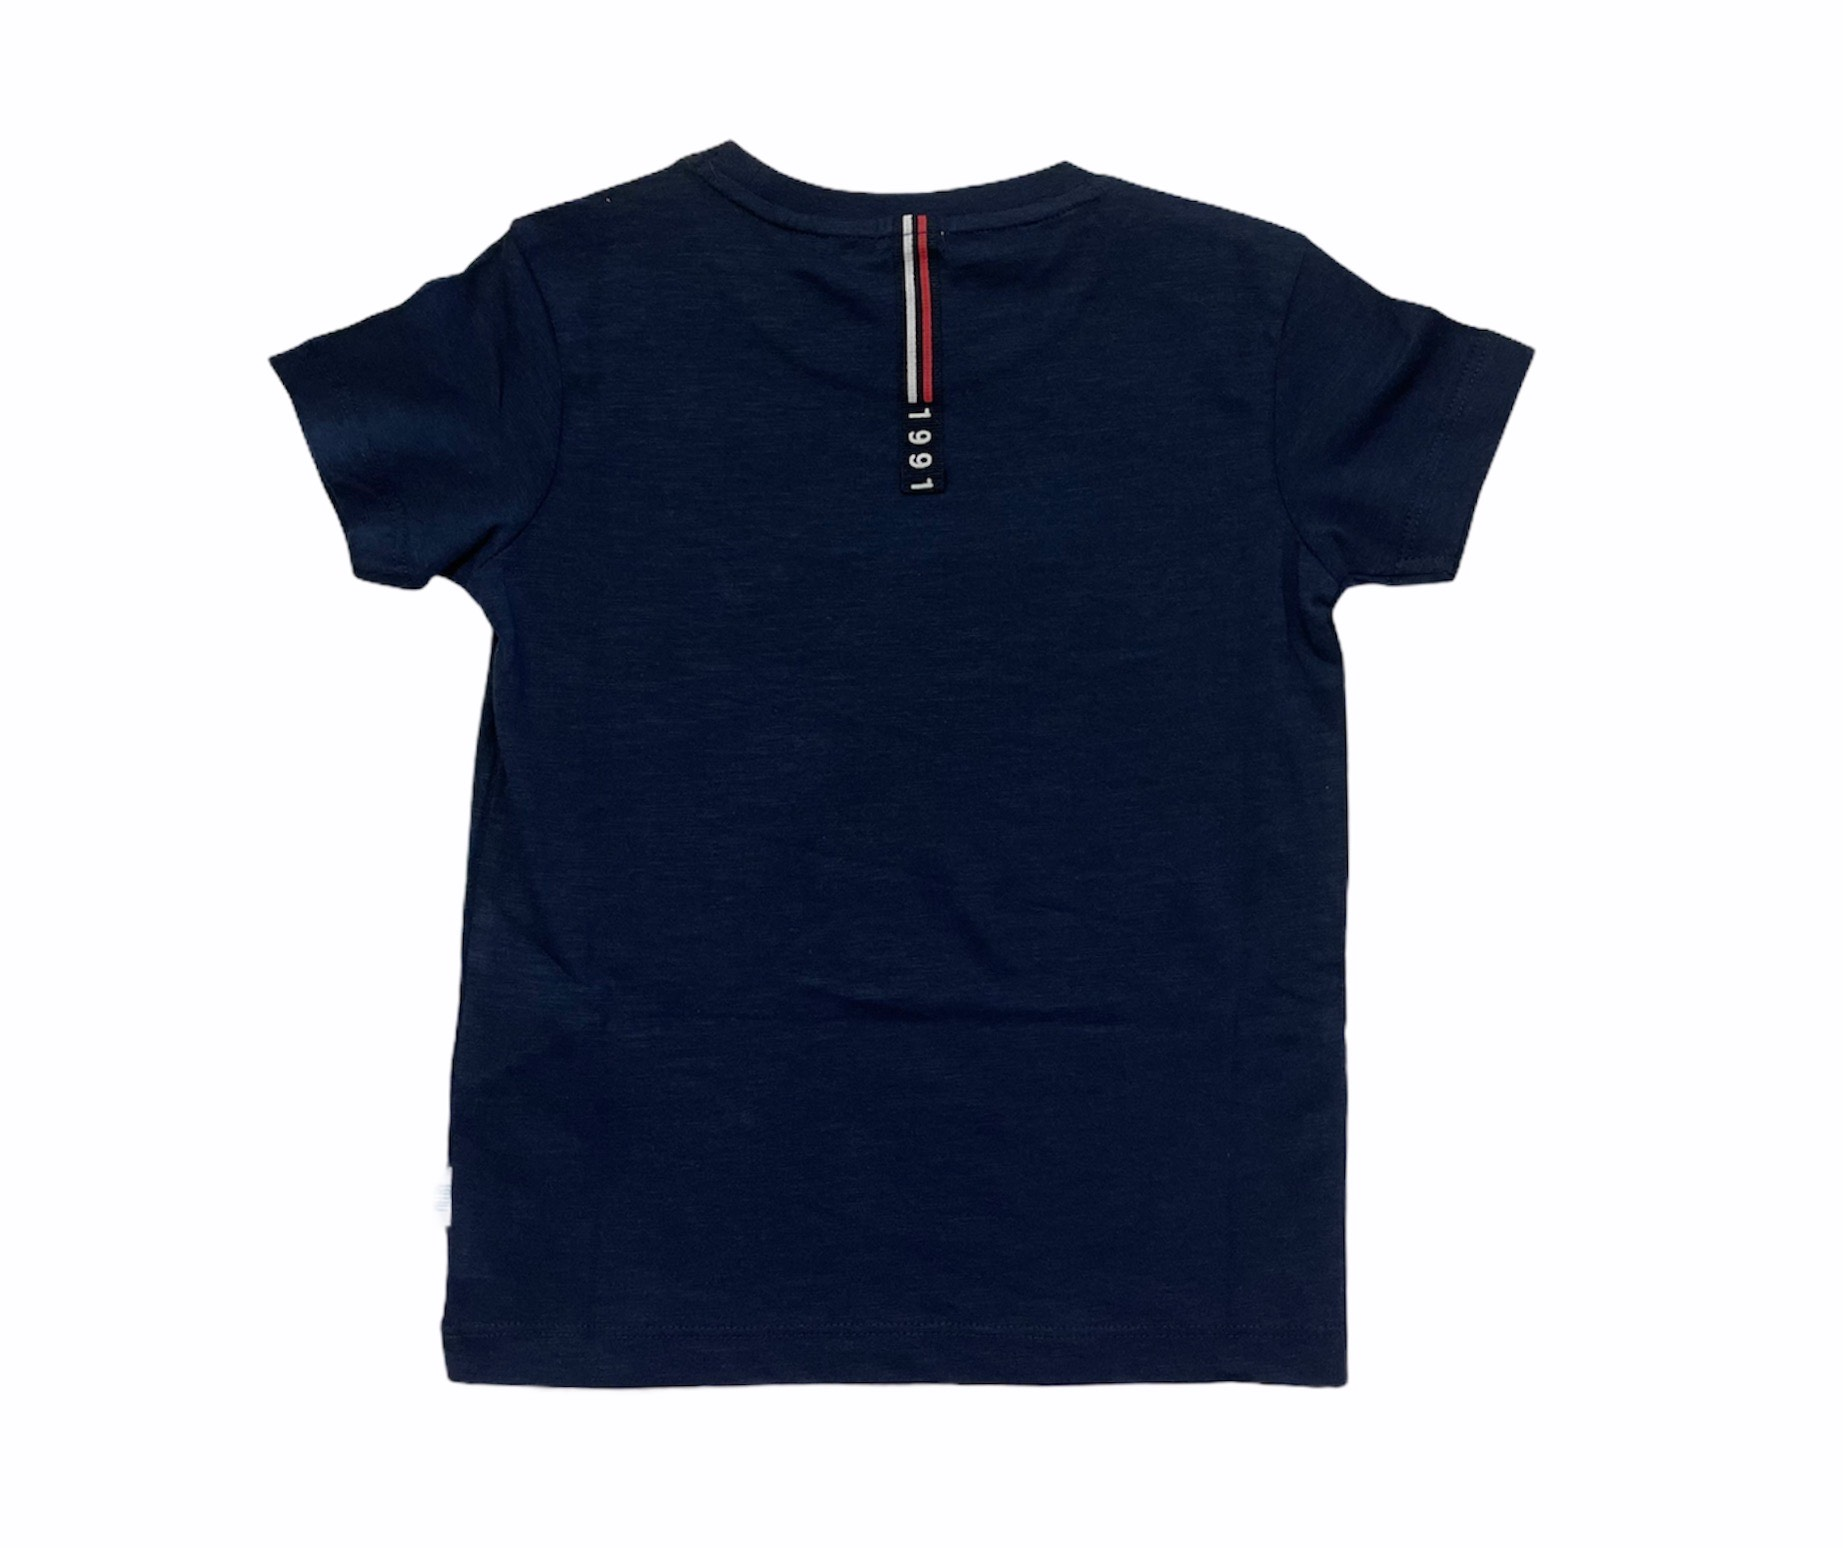 T-SHIRT MELBY POWER BOAT 2